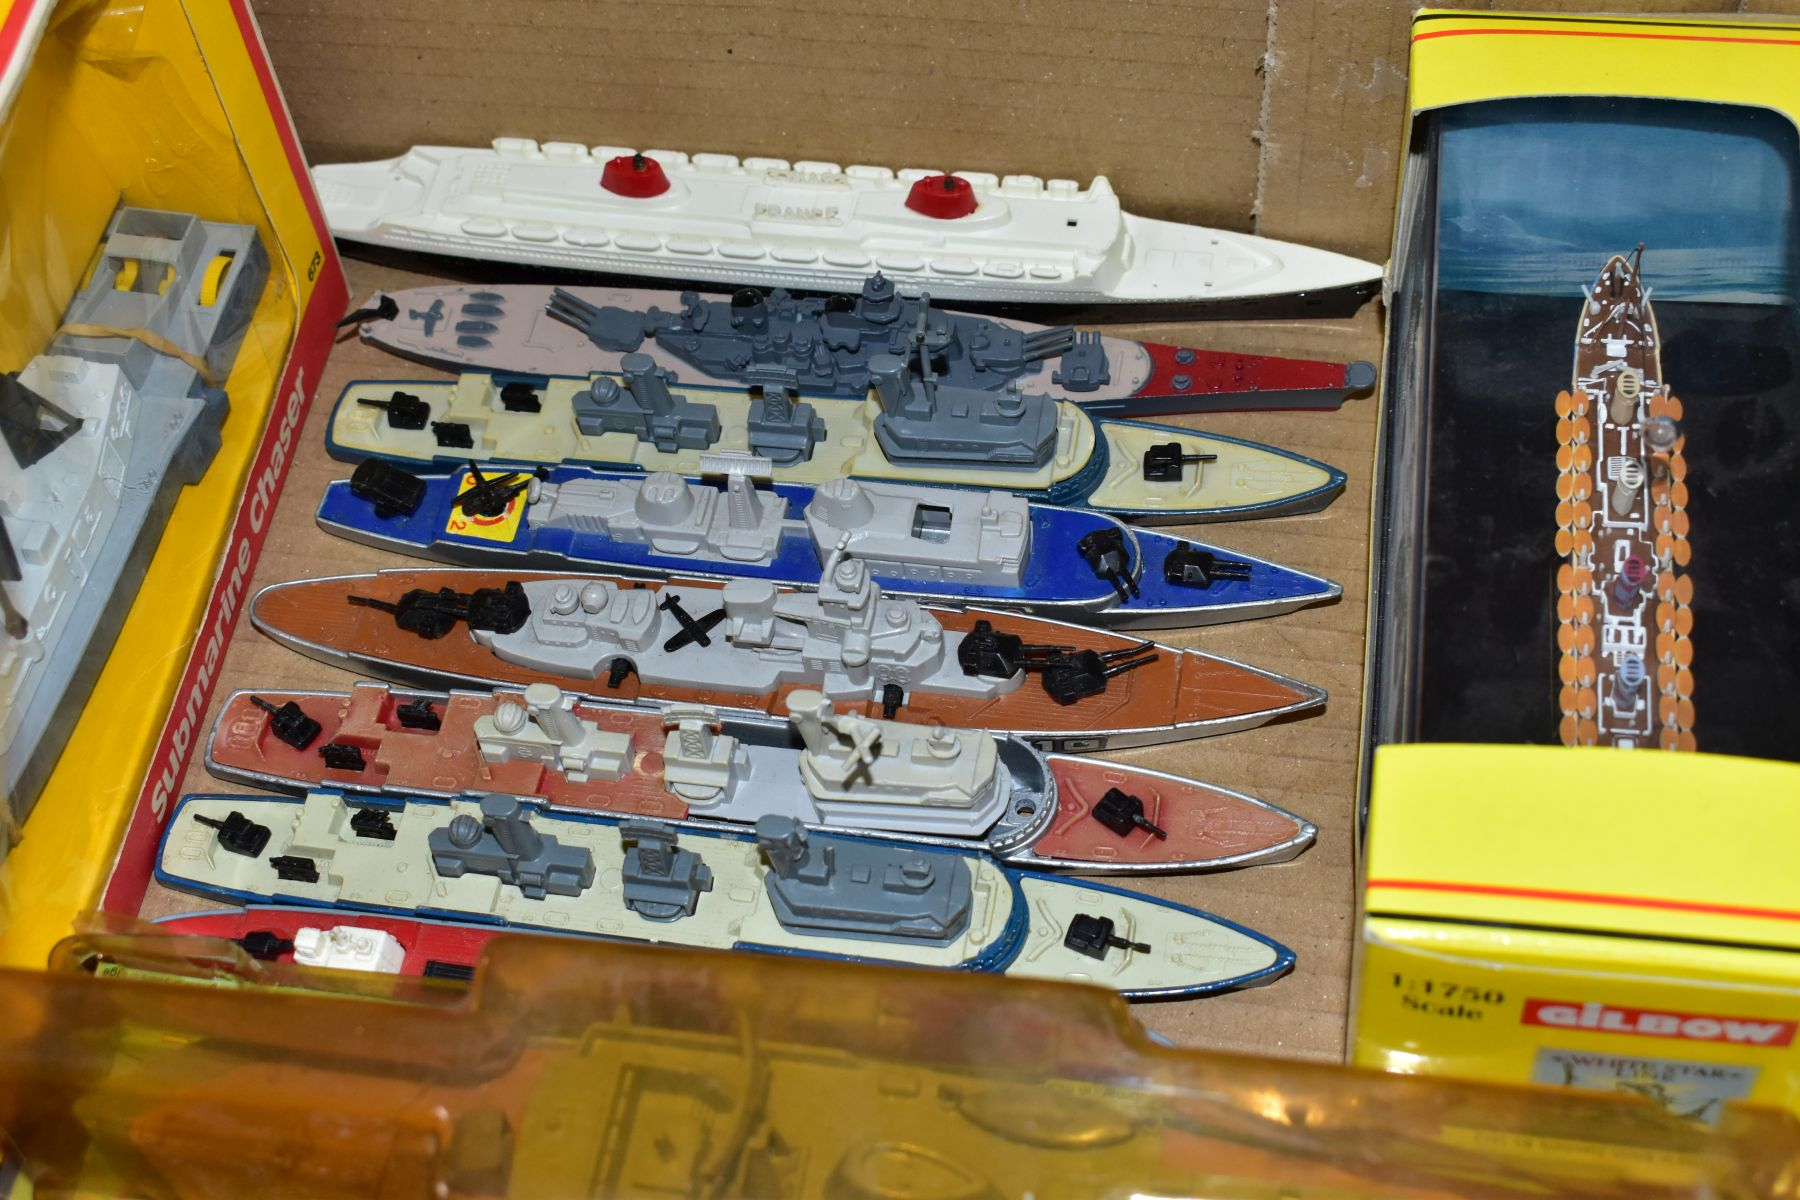 A COLLECTION OF BOXED AND UNBOXED SHIP MODELS, to include Dinky Toys Submarine Chaser, No.673, - Image 6 of 6